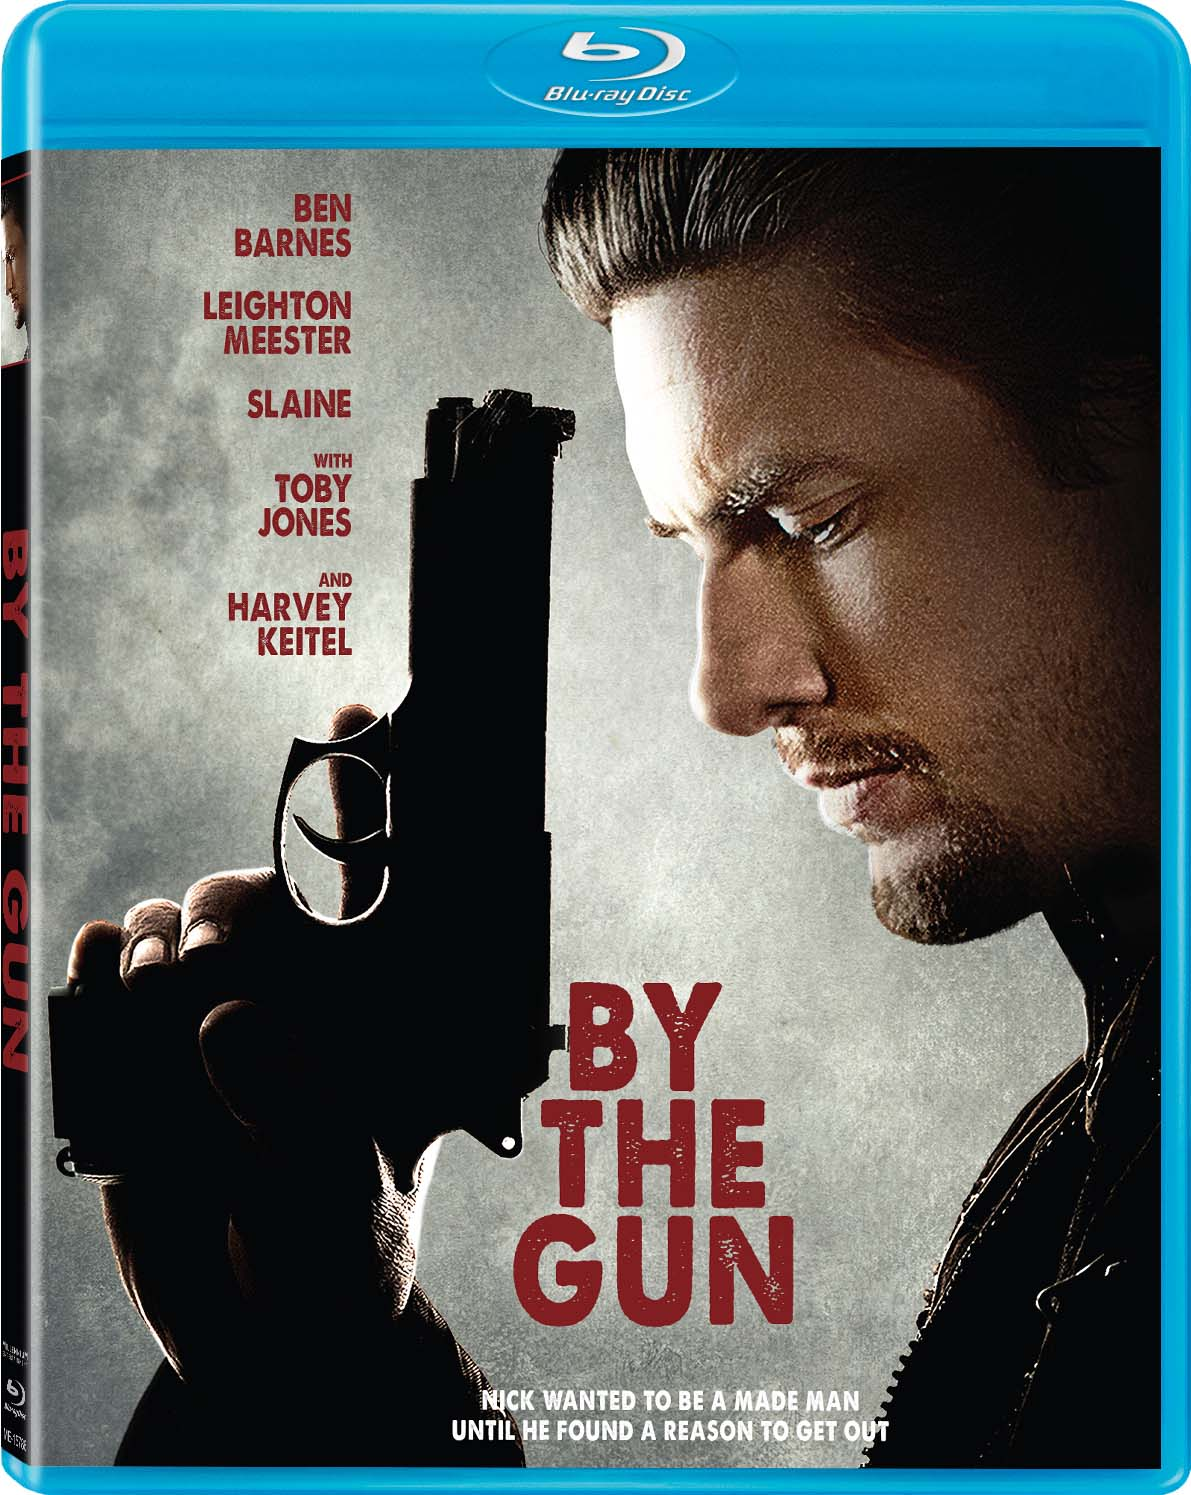 By The Gun Blu-ray Review